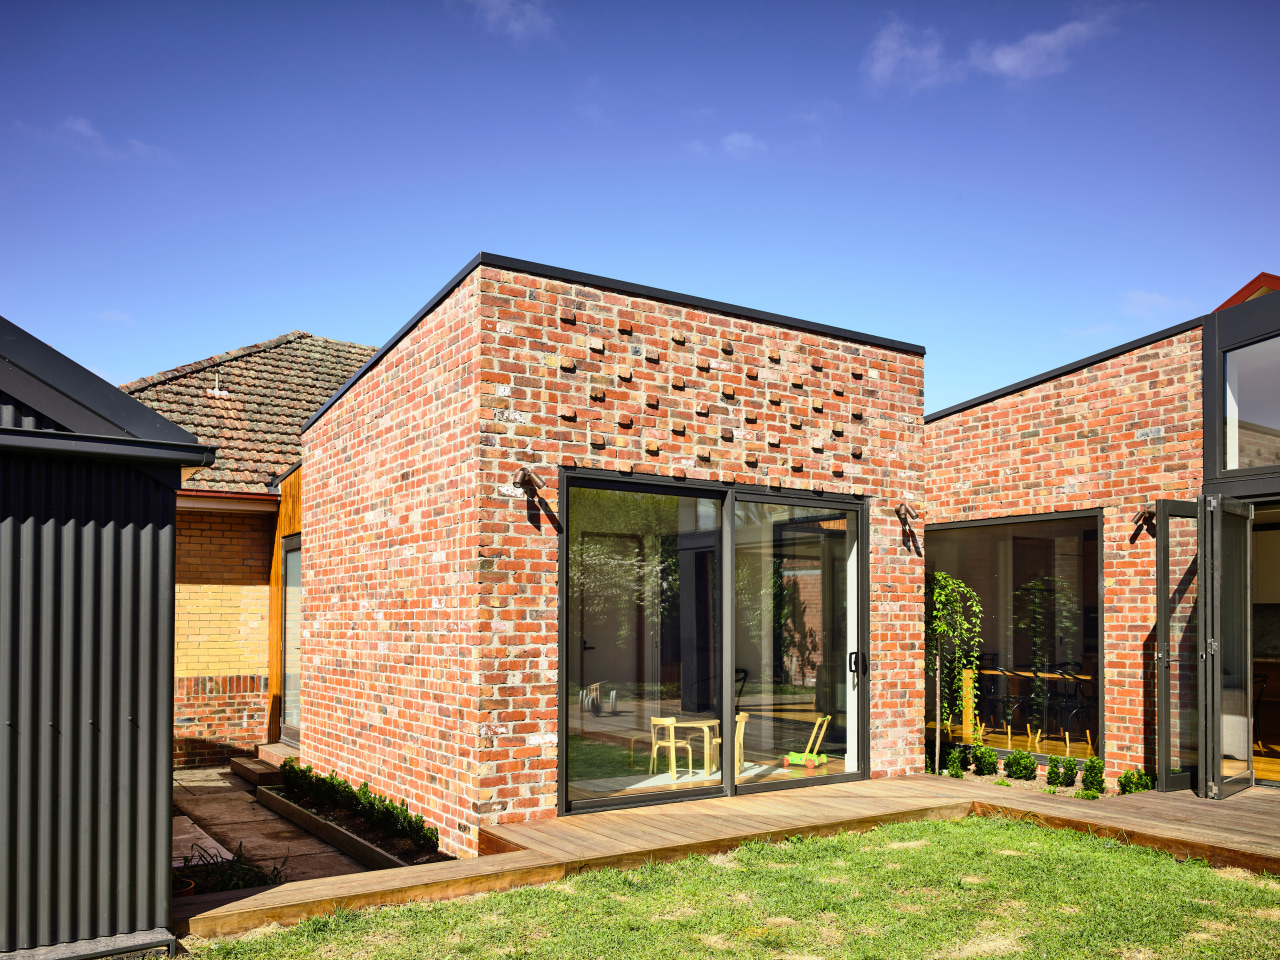 Looking like it is stand-alone, this new rumpus brick, facade, home, house, property, rresidential area, siding, bifold window, brick extension, Porter architecture